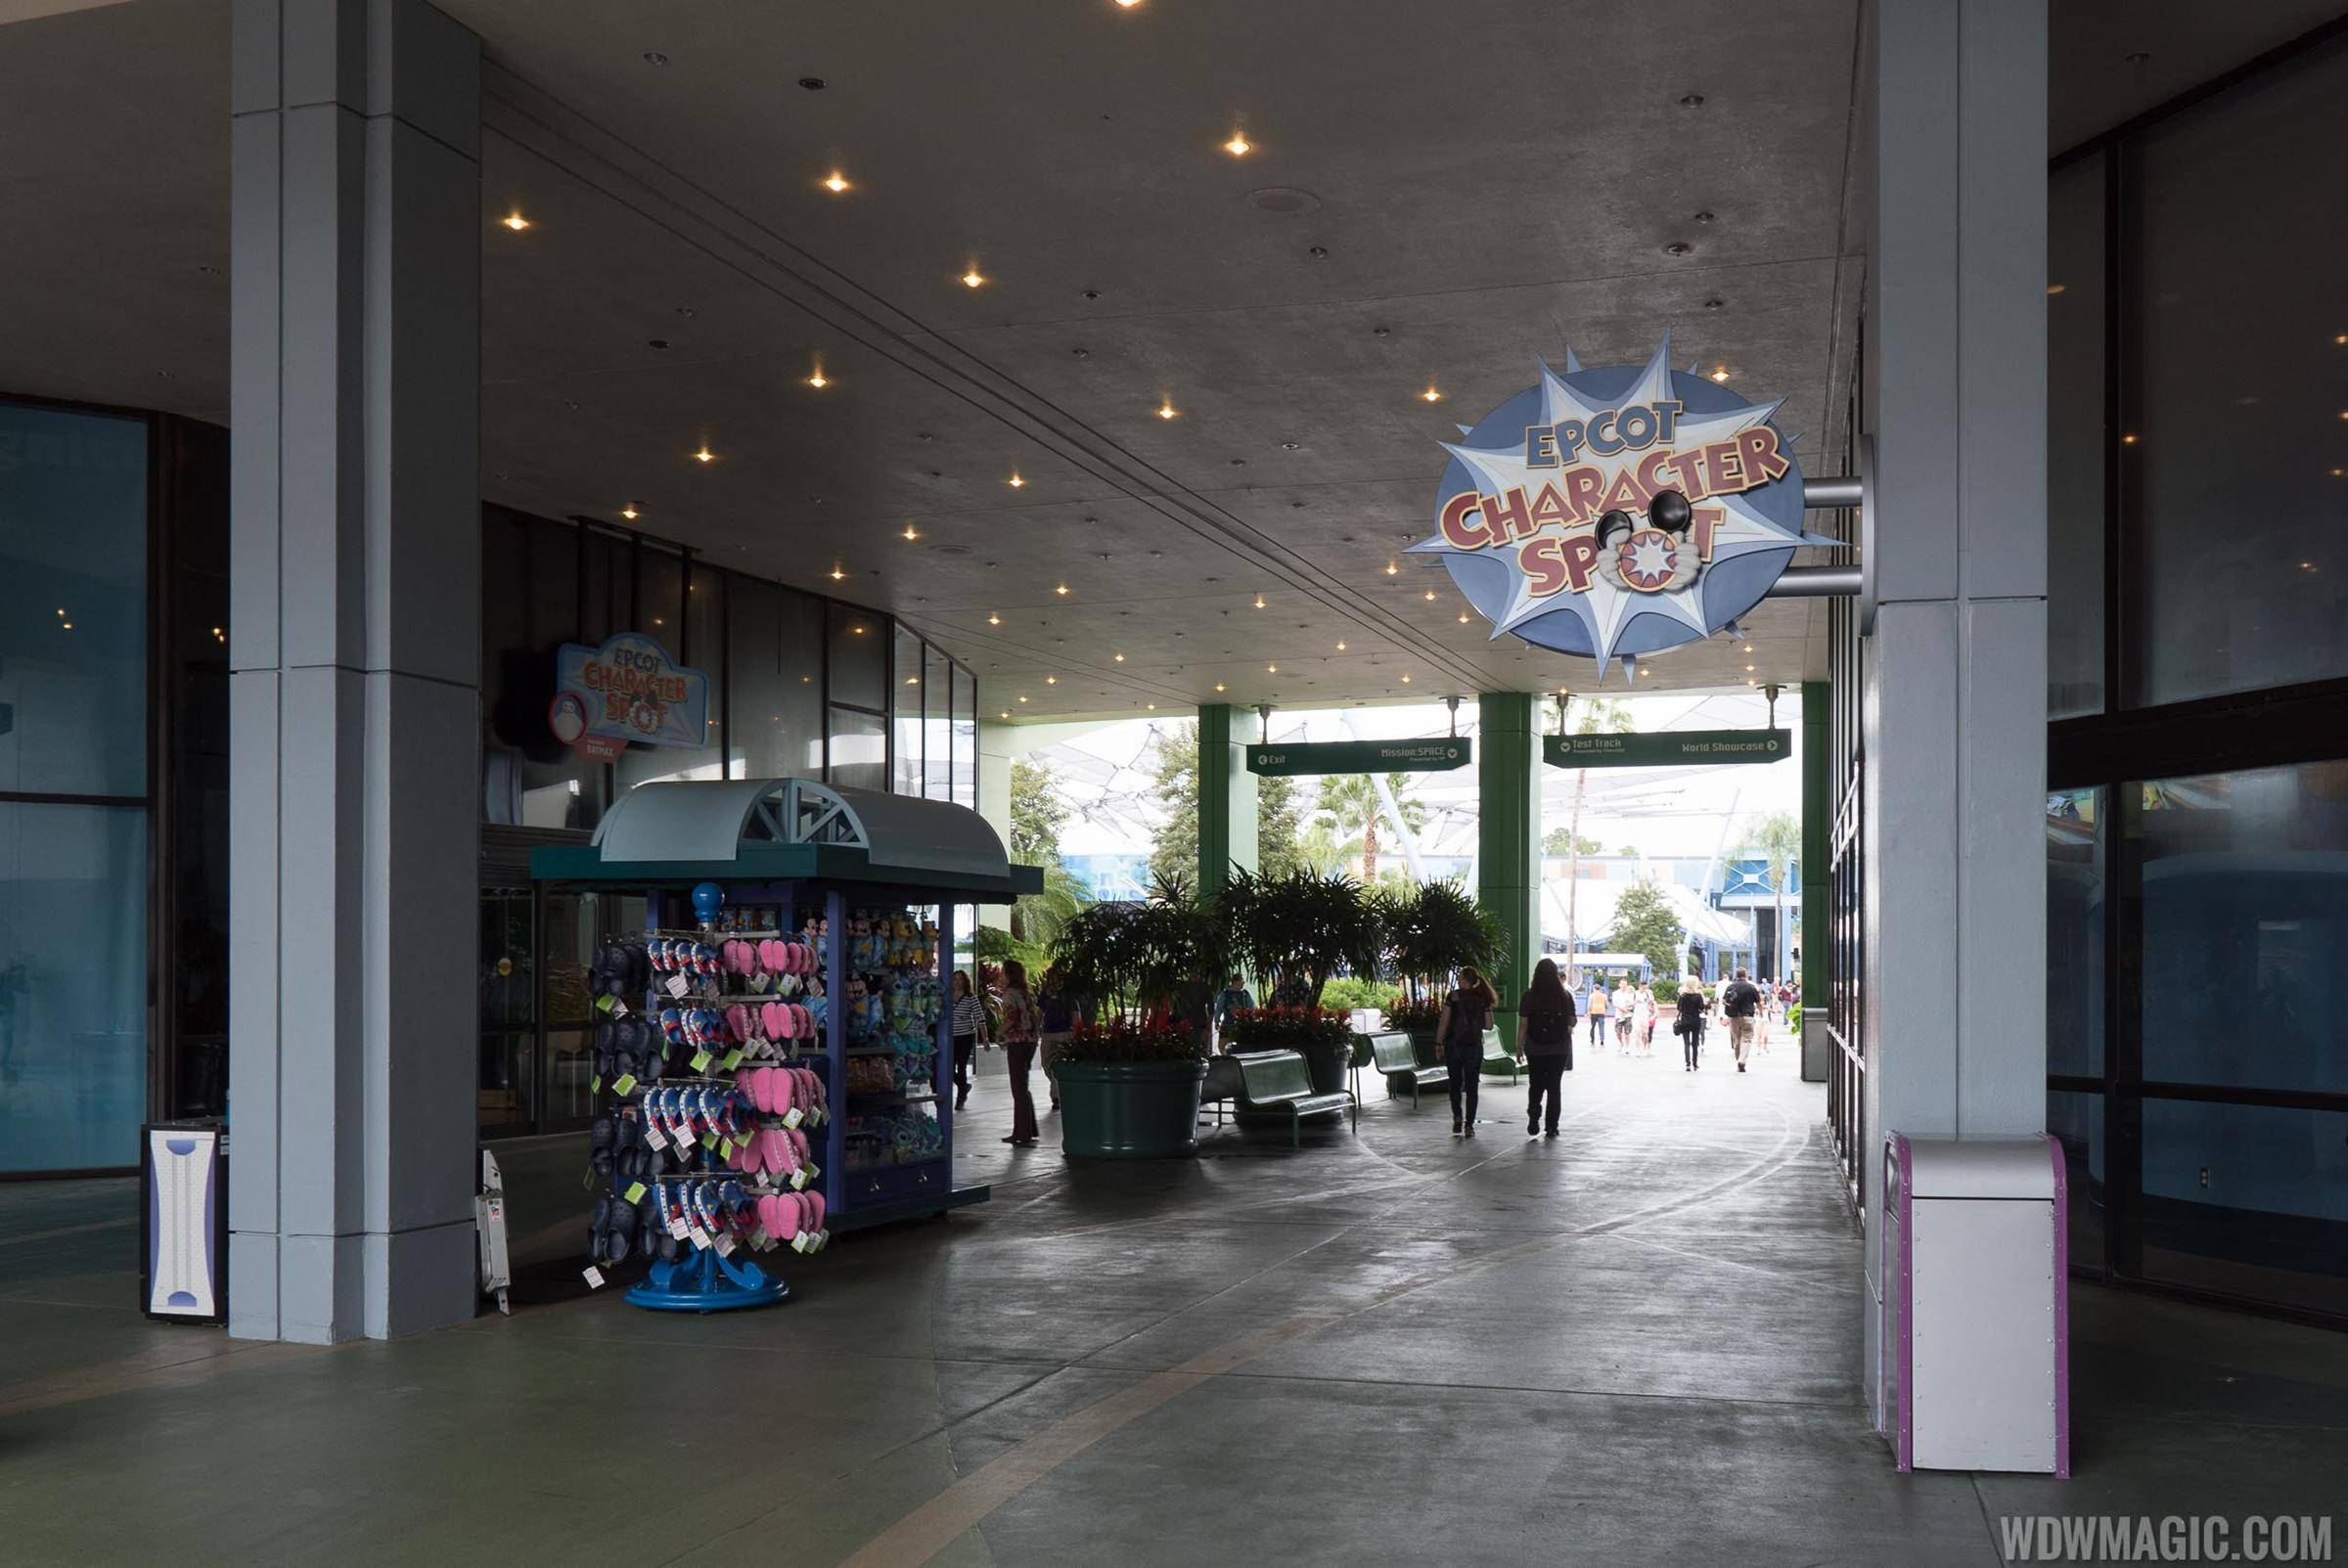 Epcot Character Meet and Greet overview